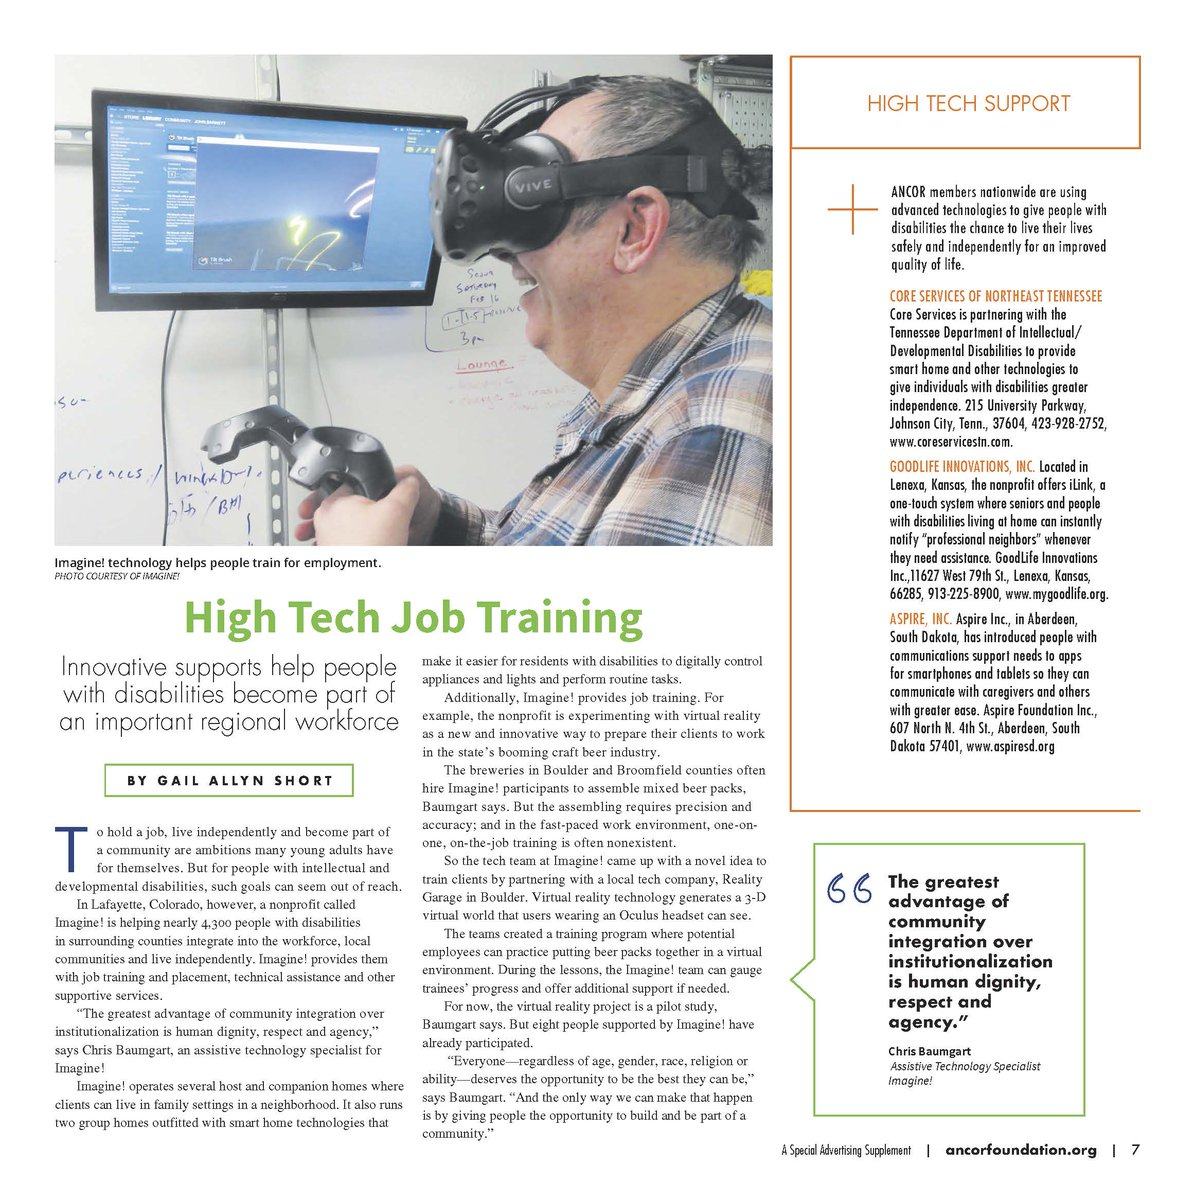 #TechnologyTuesday. Check out the latest @TheRealANCOR special Included. Supported. Empowered. publication, which features Imagine! and how we use technology to help people find meaningful employment. http://wehaveastake.org/2020/02/included-supported-empowered-flipbook/… @WeHaveAStakepic.twitter.com/cPYOLGM5vN